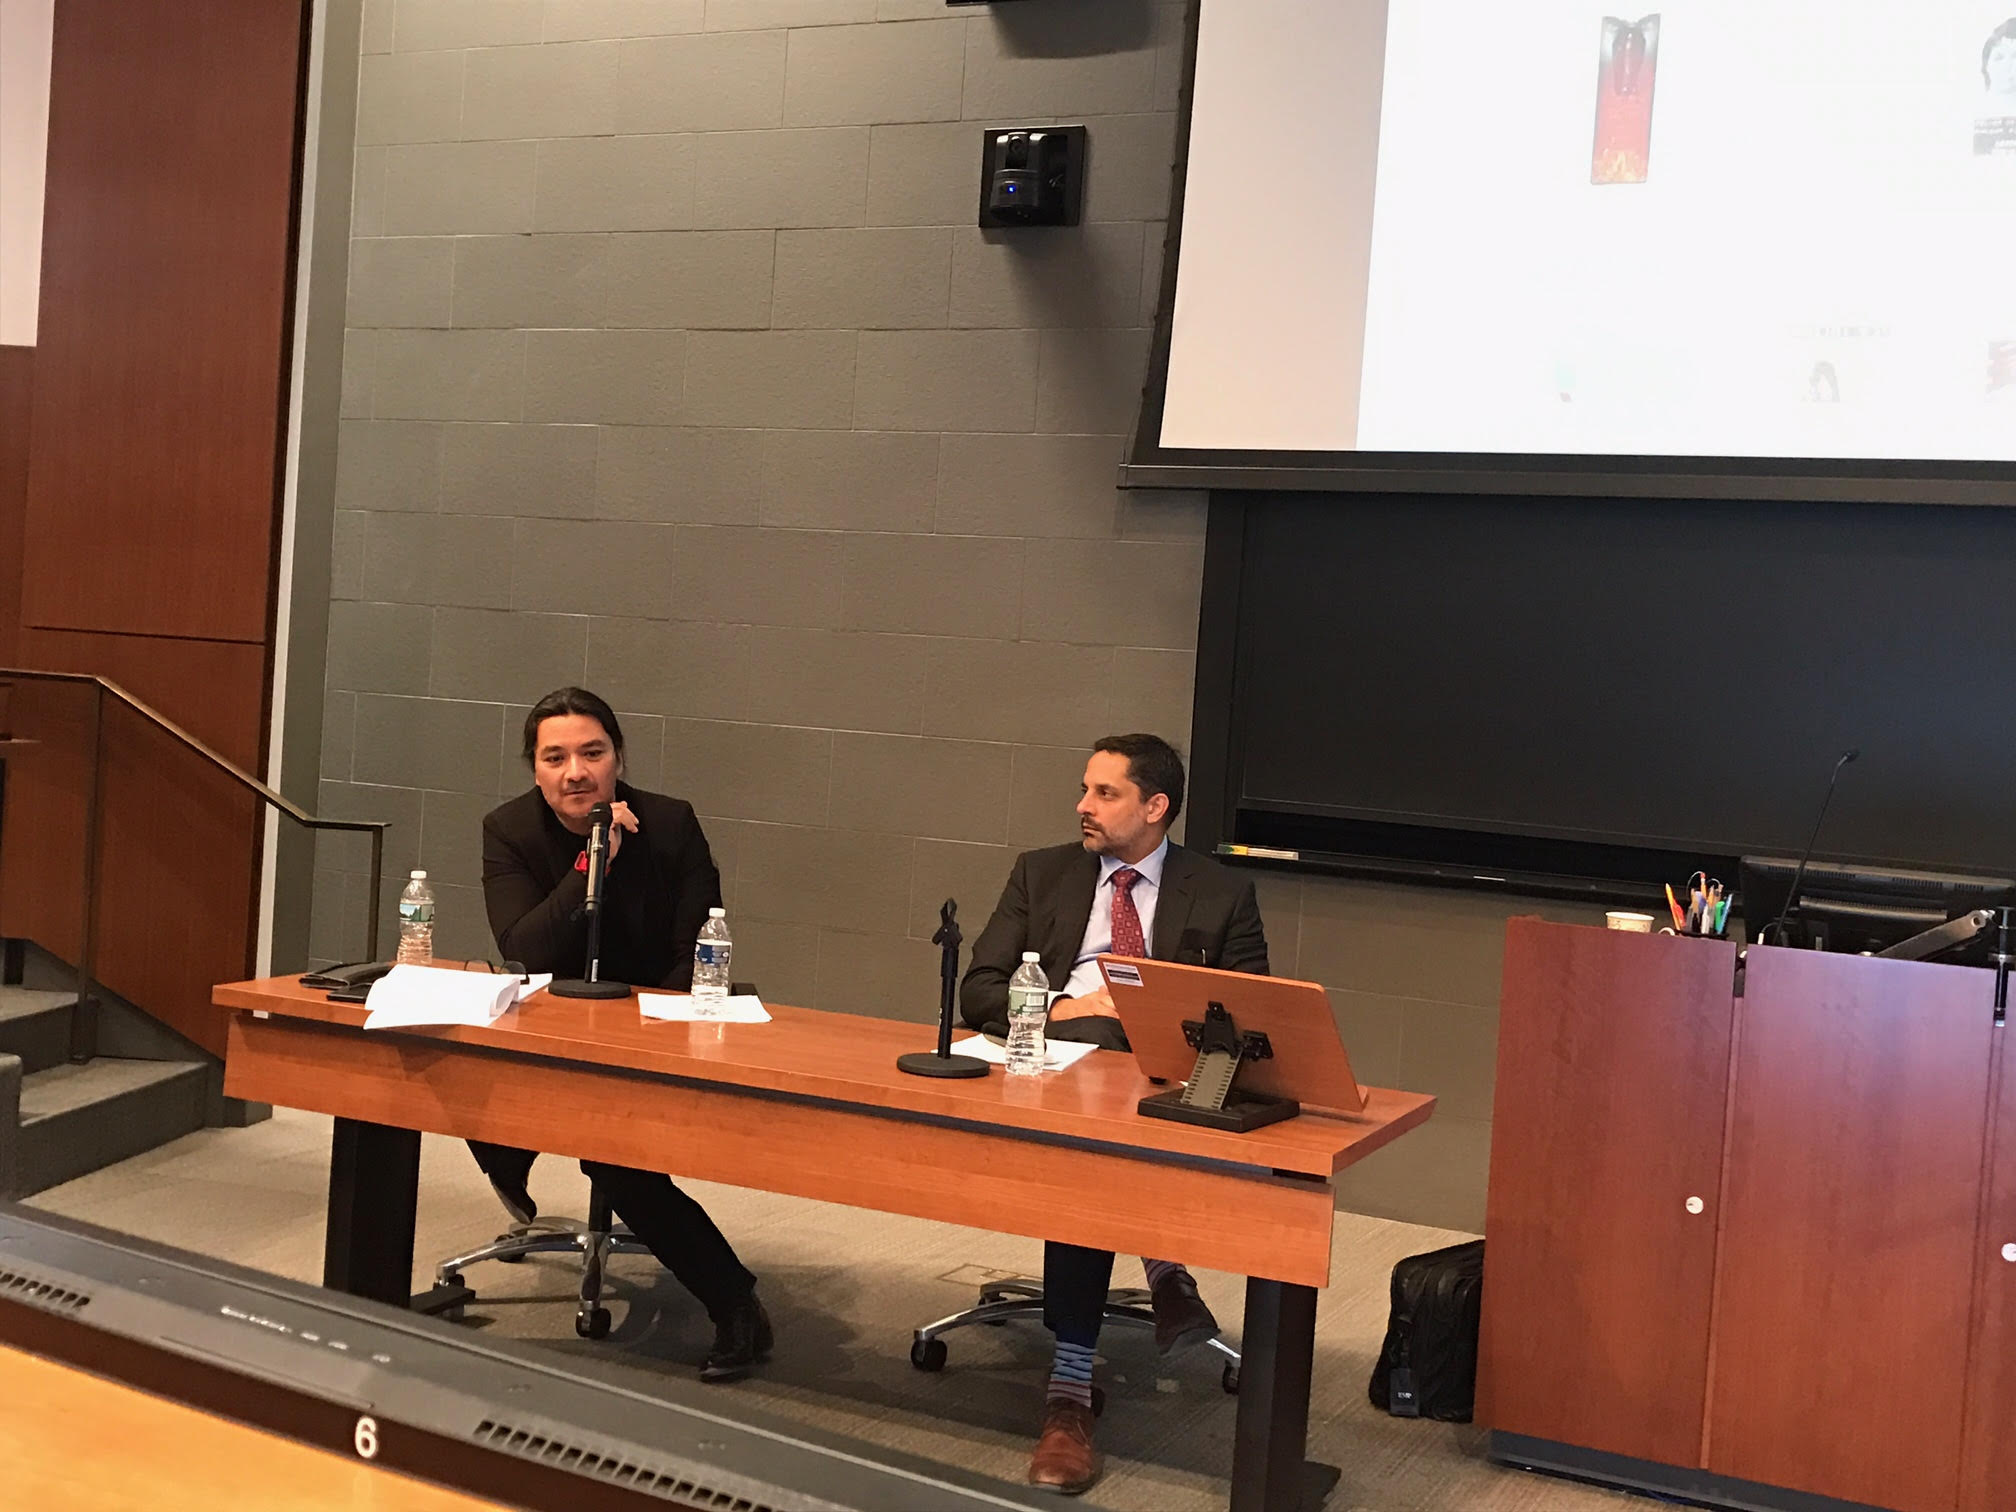 Dean of Cornell Law School and Professor of Law, Eduardo Peñalver (right) and Sergio Munoz Sarmiento discussing property law, disobedience and contemporary art at the Felix Gonzalez-Torres Symposium, which was held on March 18, 2017 at Cornell Law School.